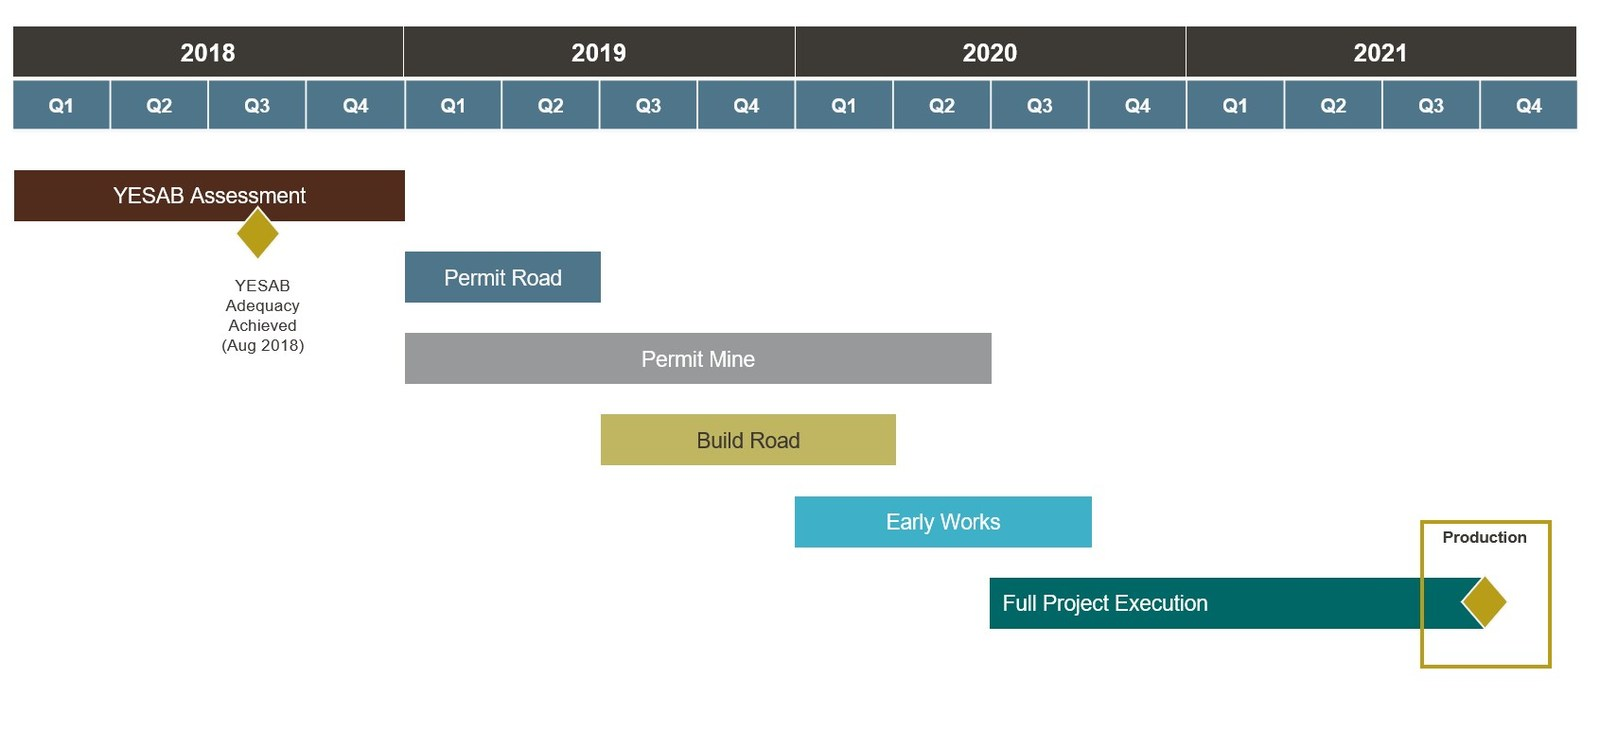 Figure 7: Coffee Project Timeline and Key Milestones. Production is subject to receipt of permits and positive feasibility study.